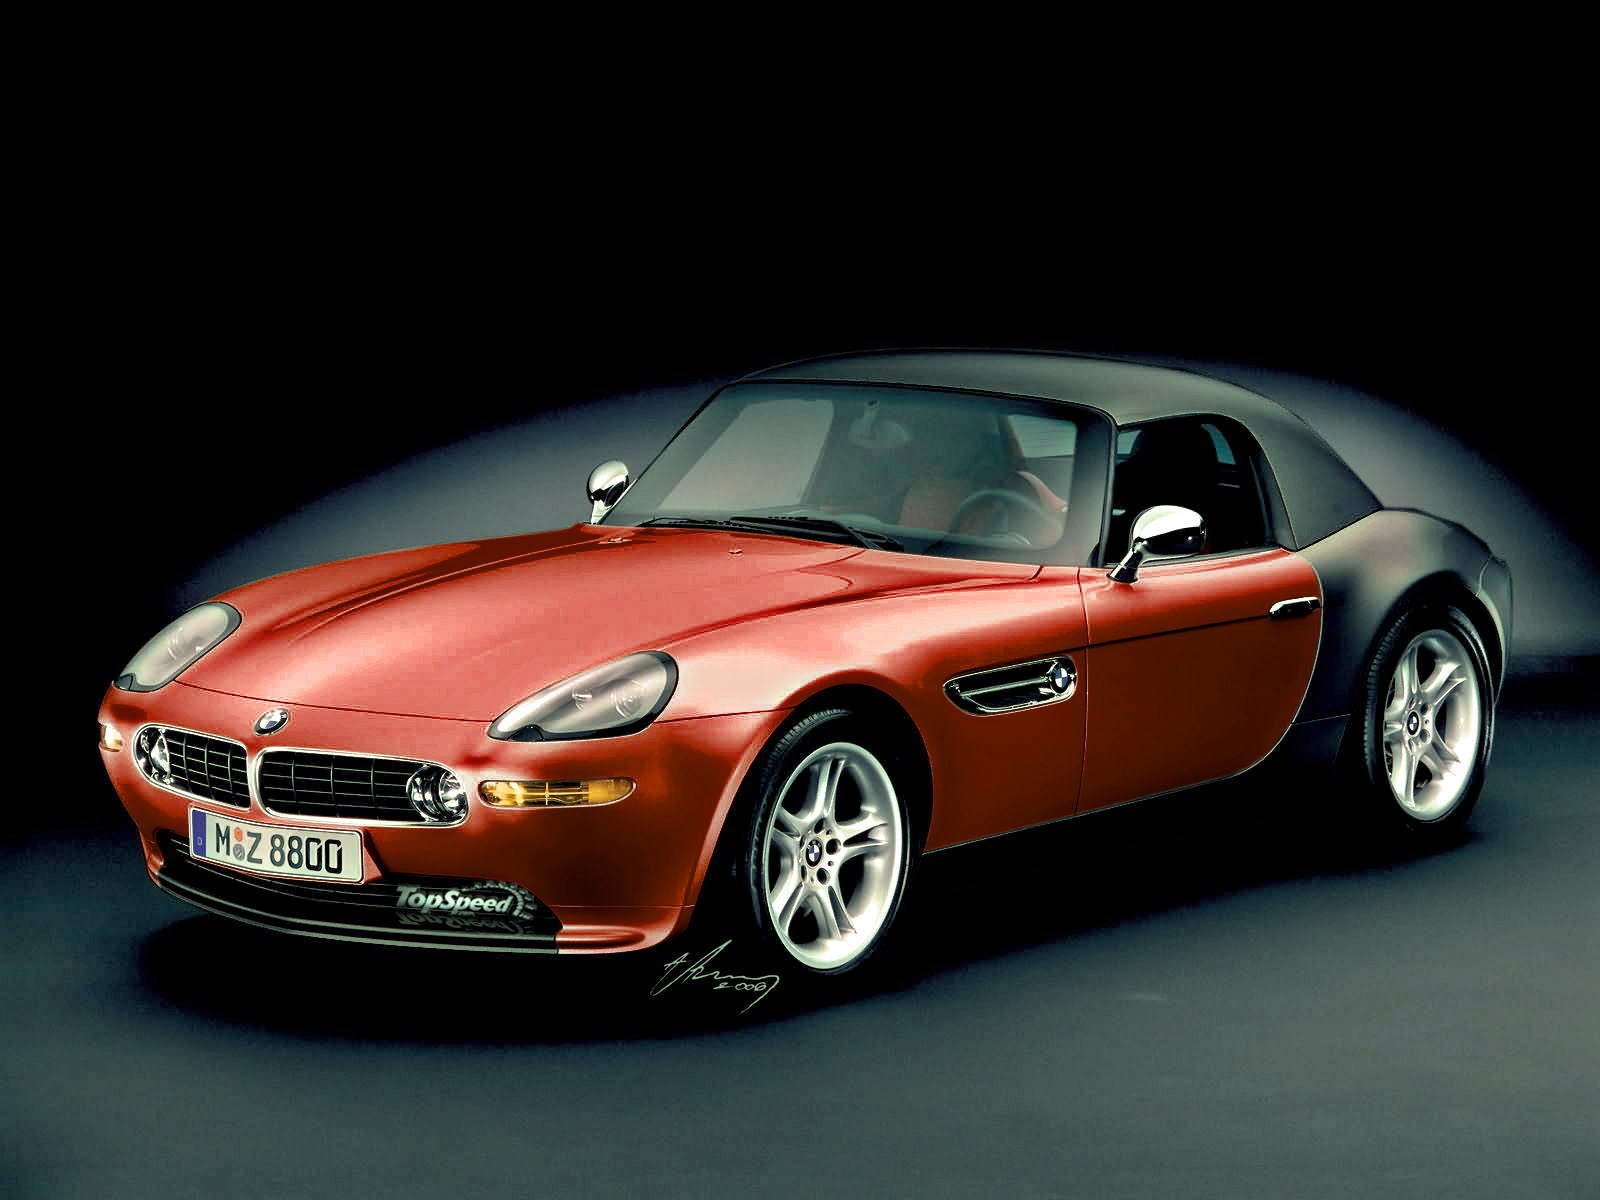 2000 2003 Bmw Z8 Picture 97477 Car Review Top Speed